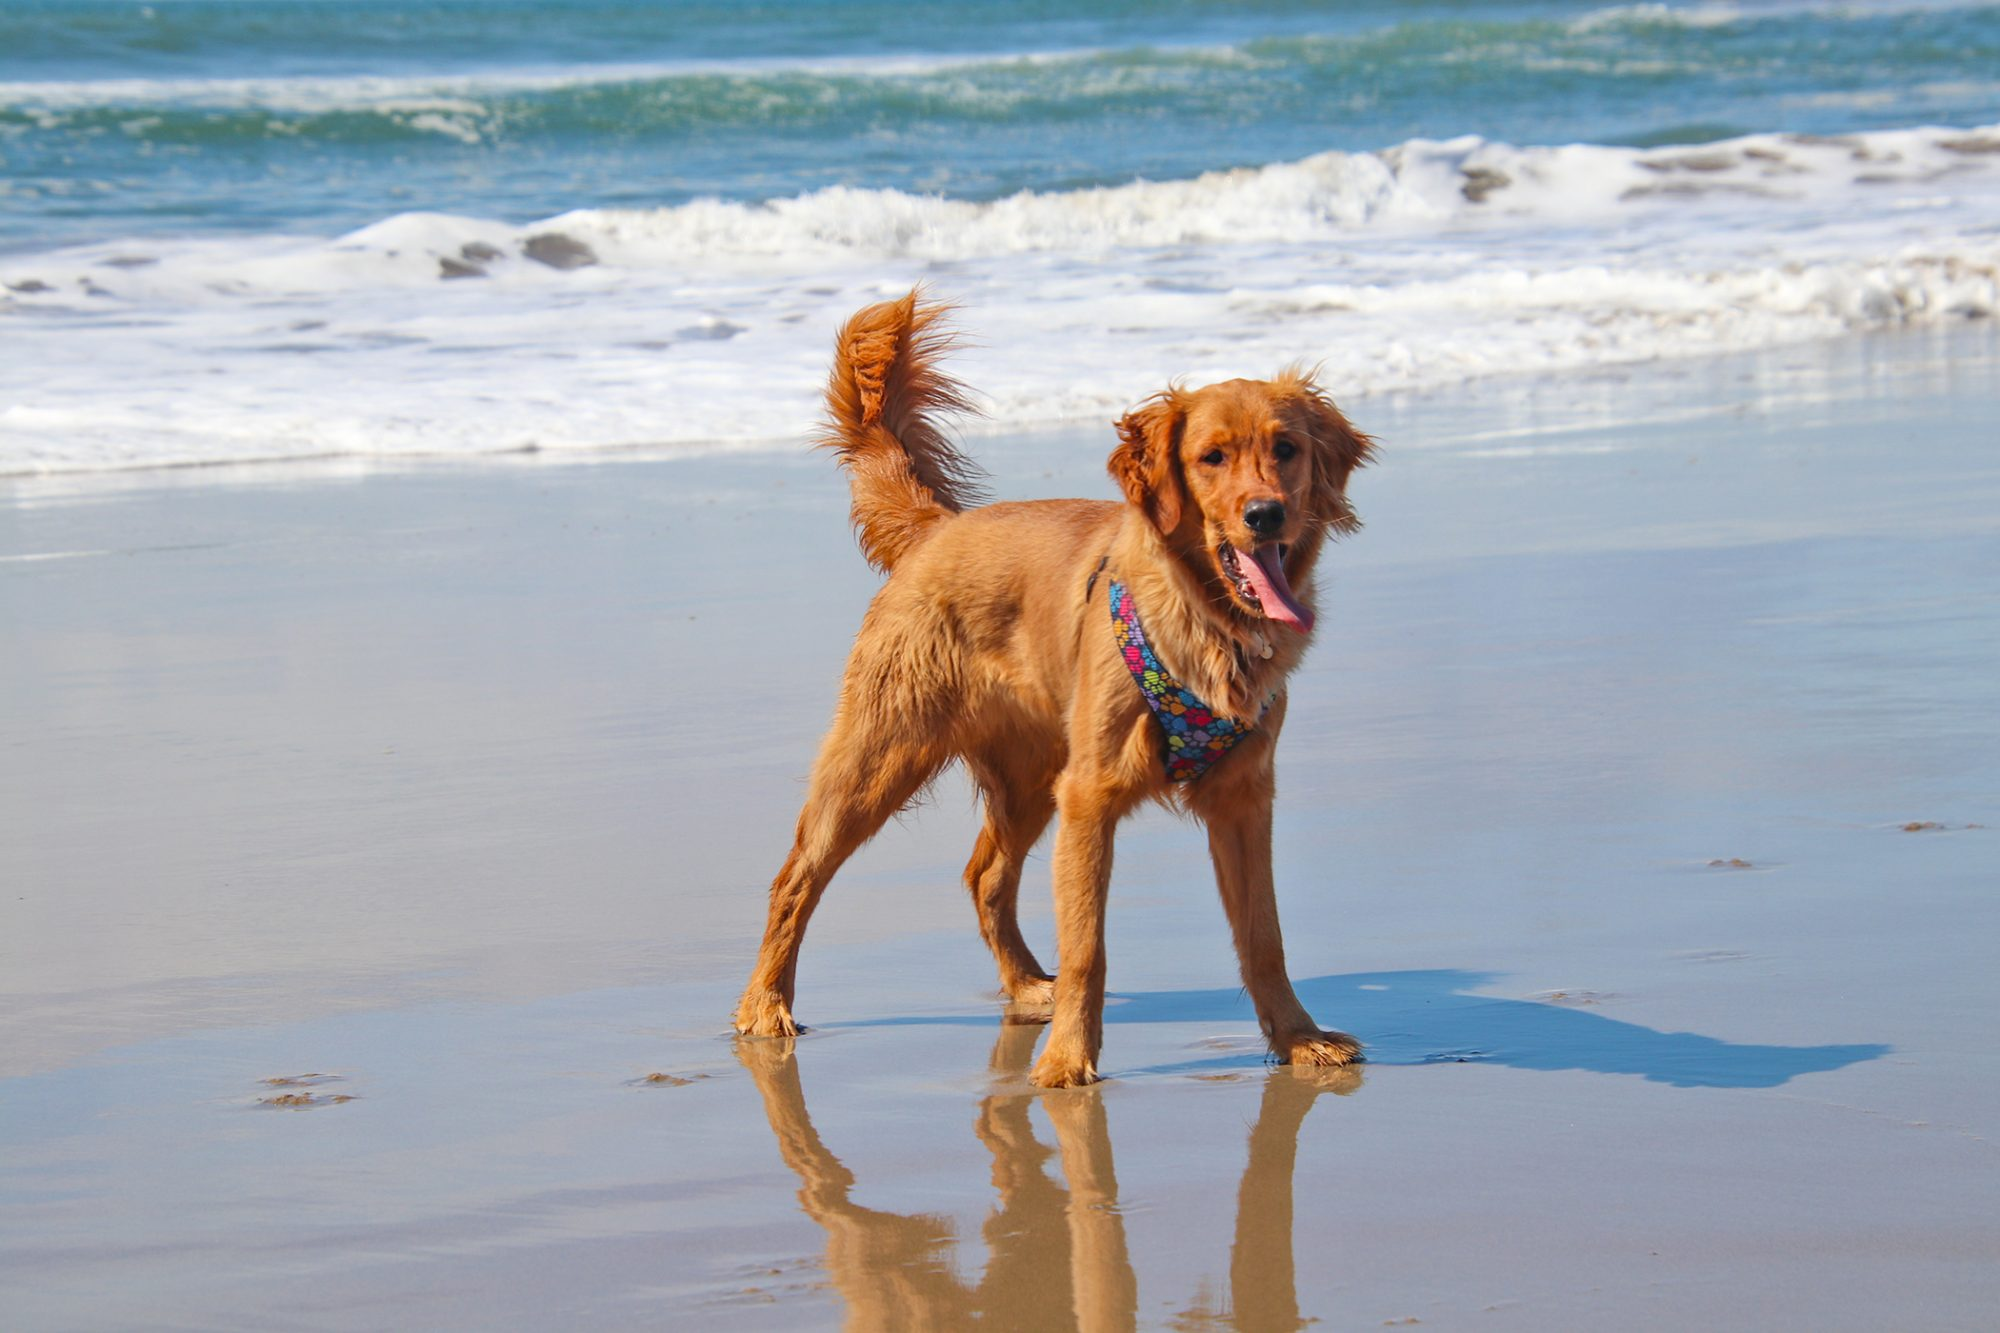 Canadian Golden Retriever on beach, tall, thin with darker, thinner coat